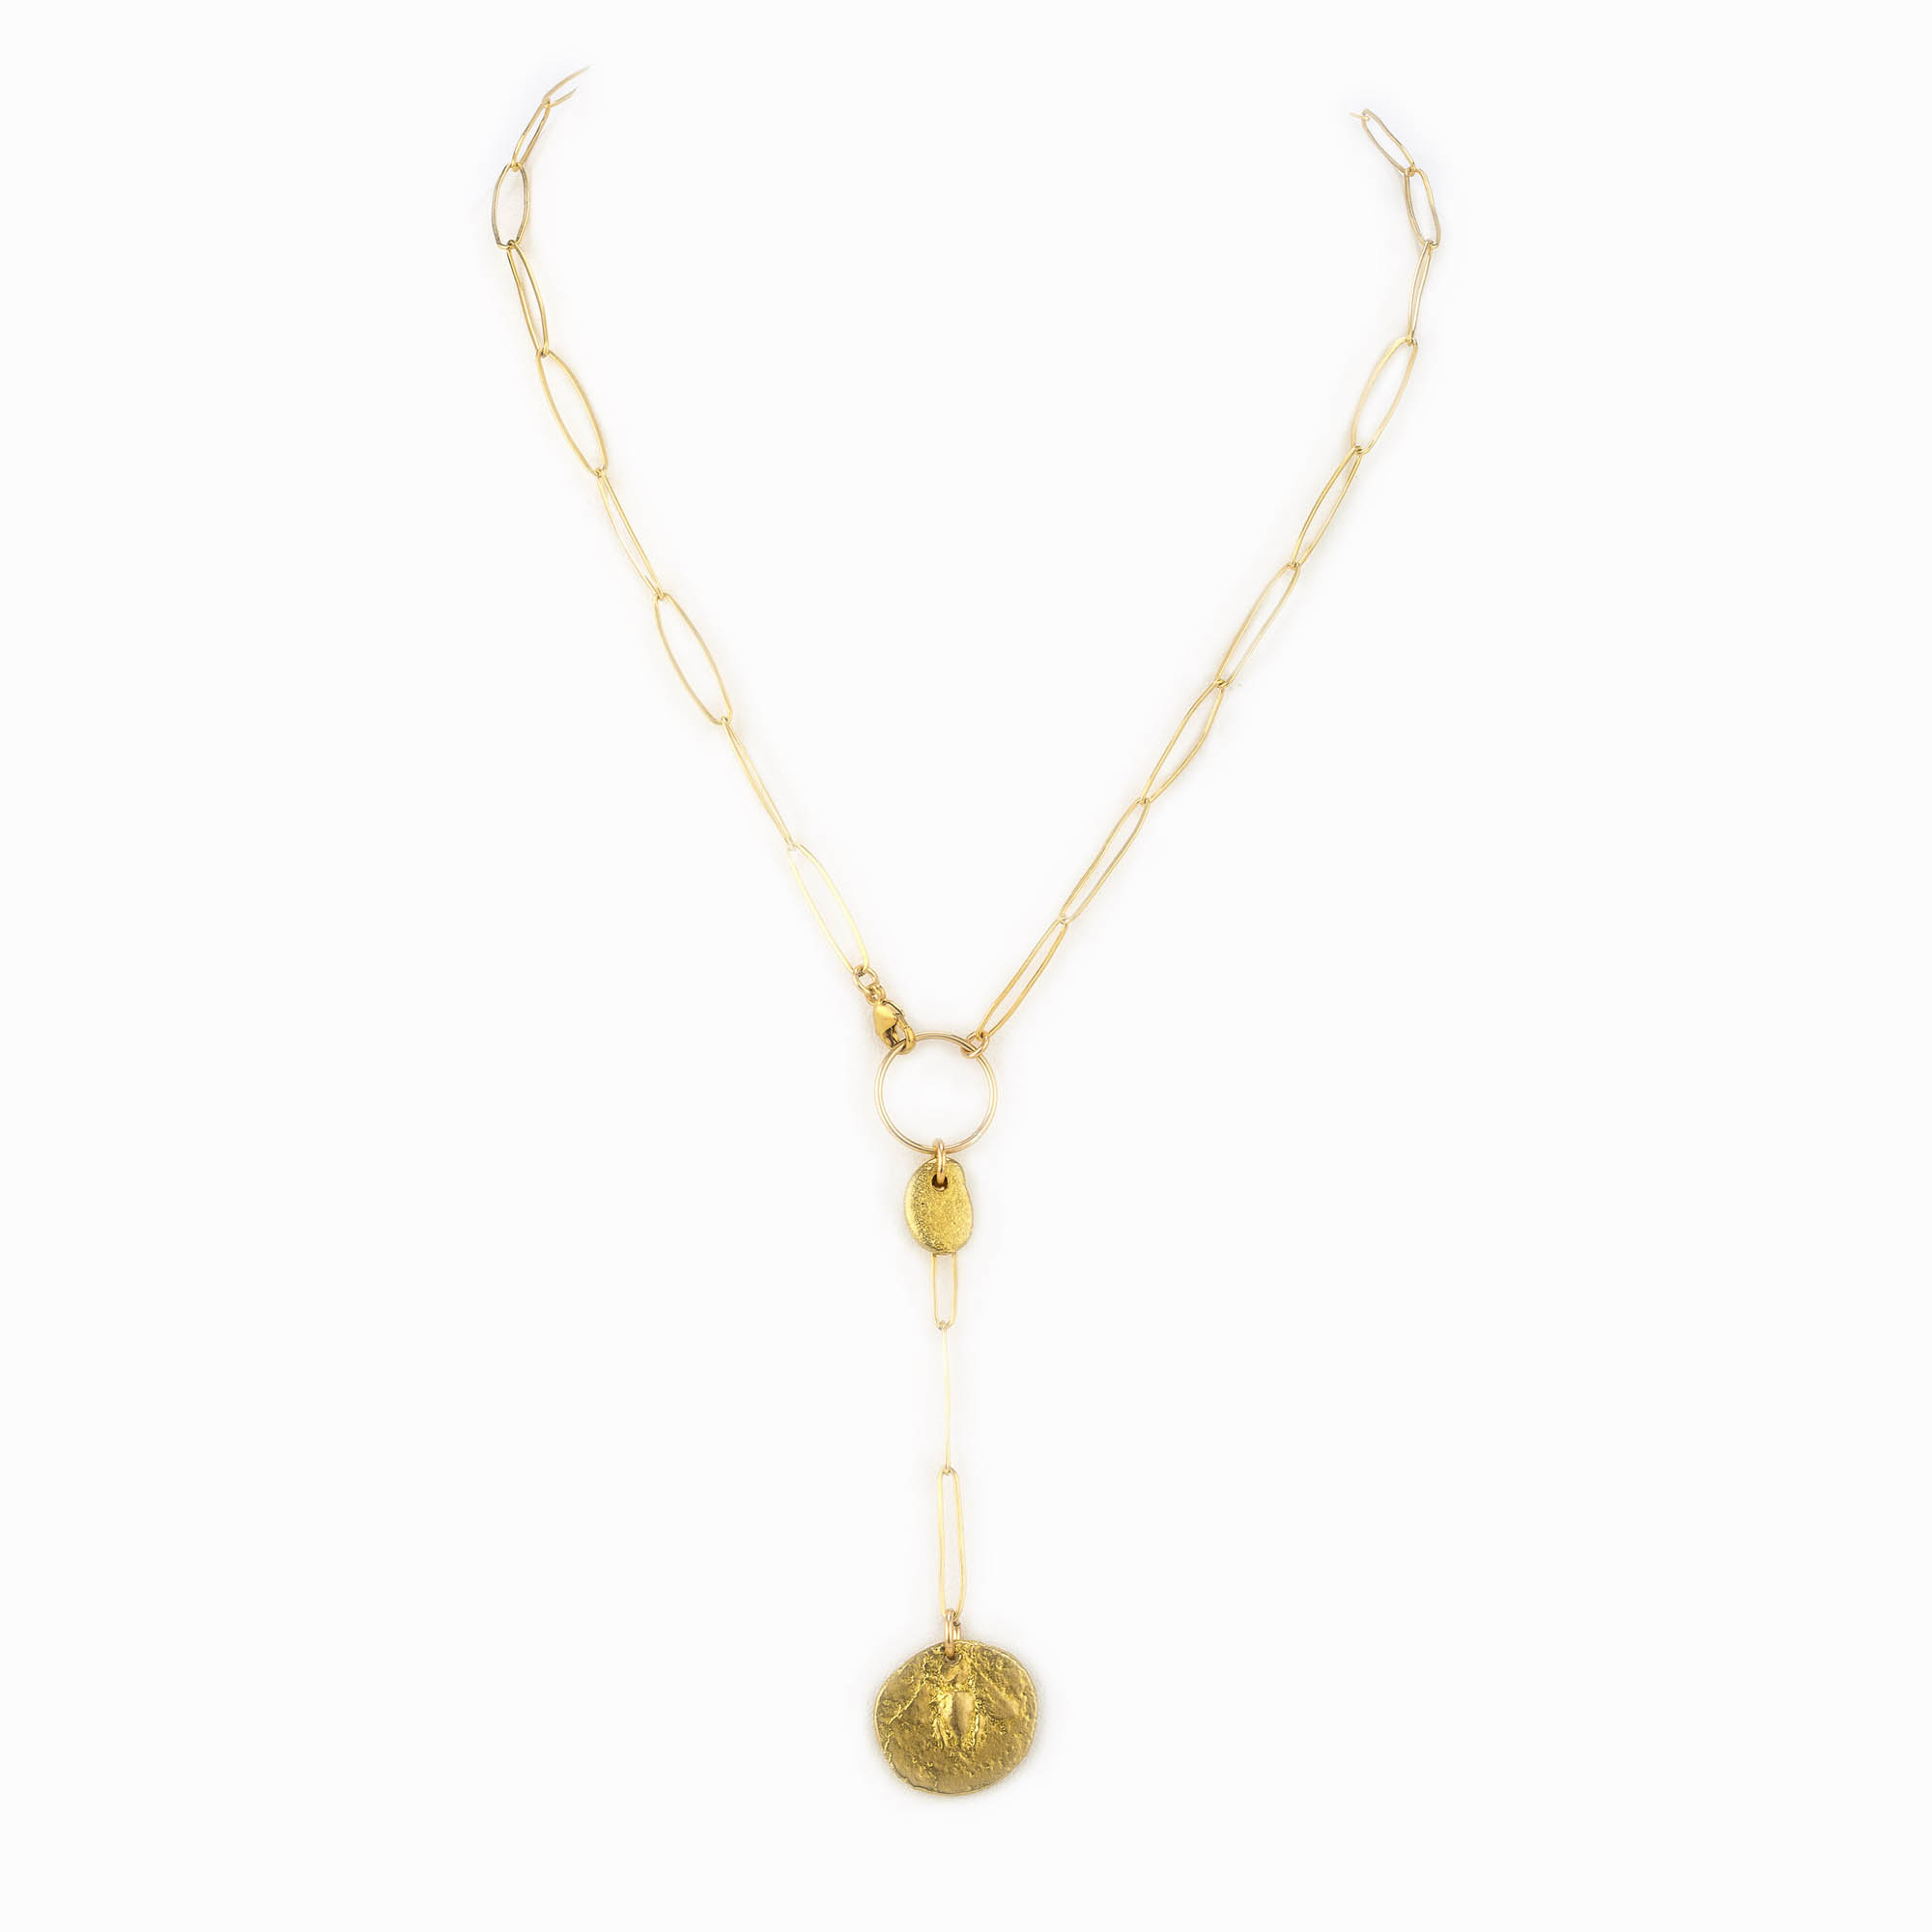 A 14k gold filled paperclip chain necklace with a small brass charm and a brass coin drop.